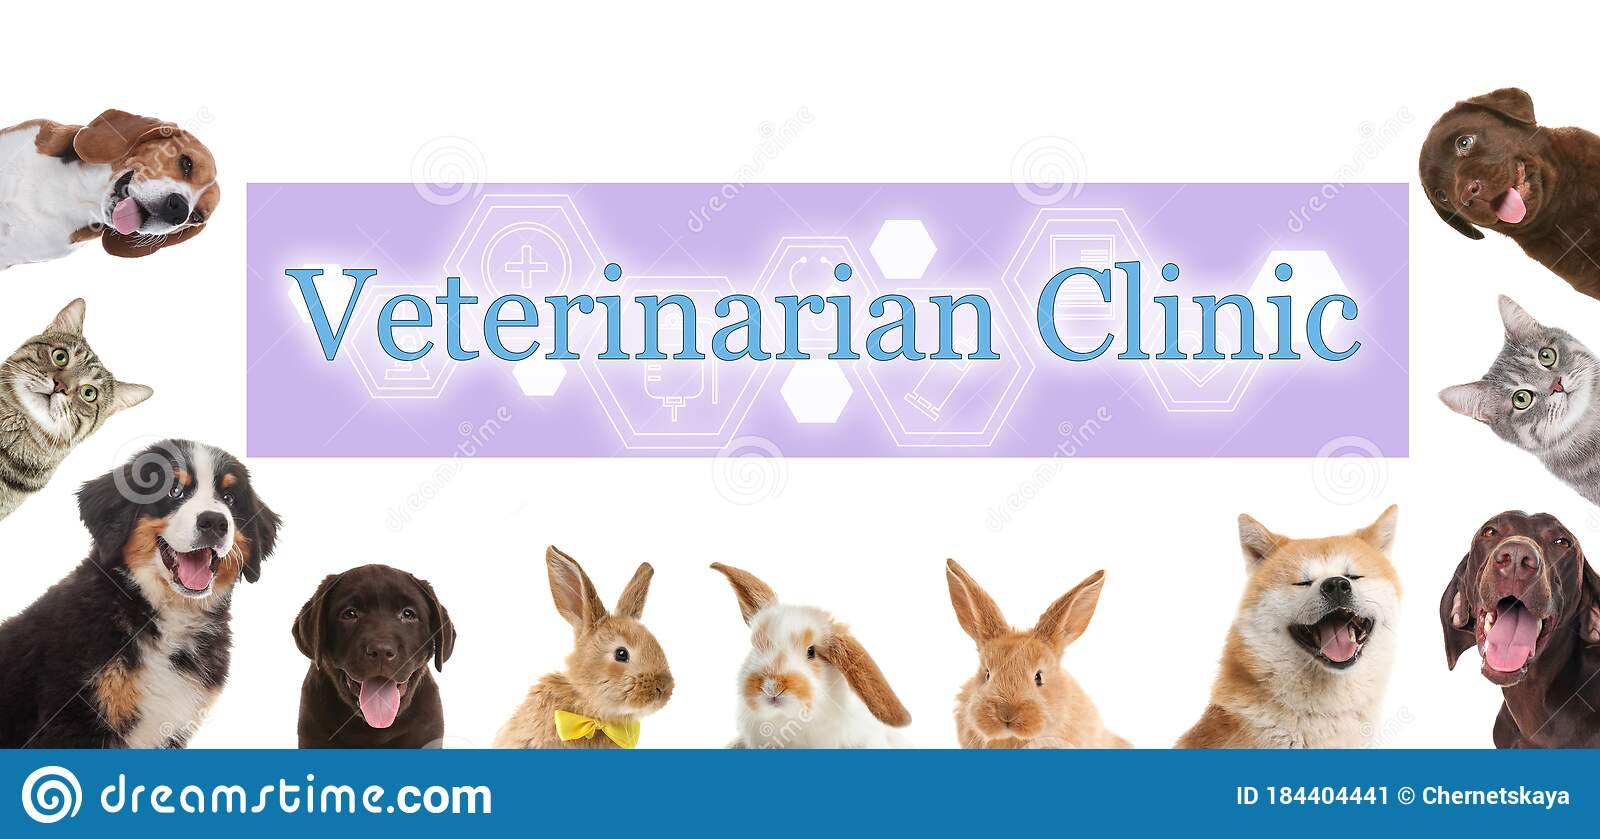 Collage With Cute Pets And Text Veterinarian Clinic On White Background Banner Design Stock Image Image Of Labrador Doctor 184404441